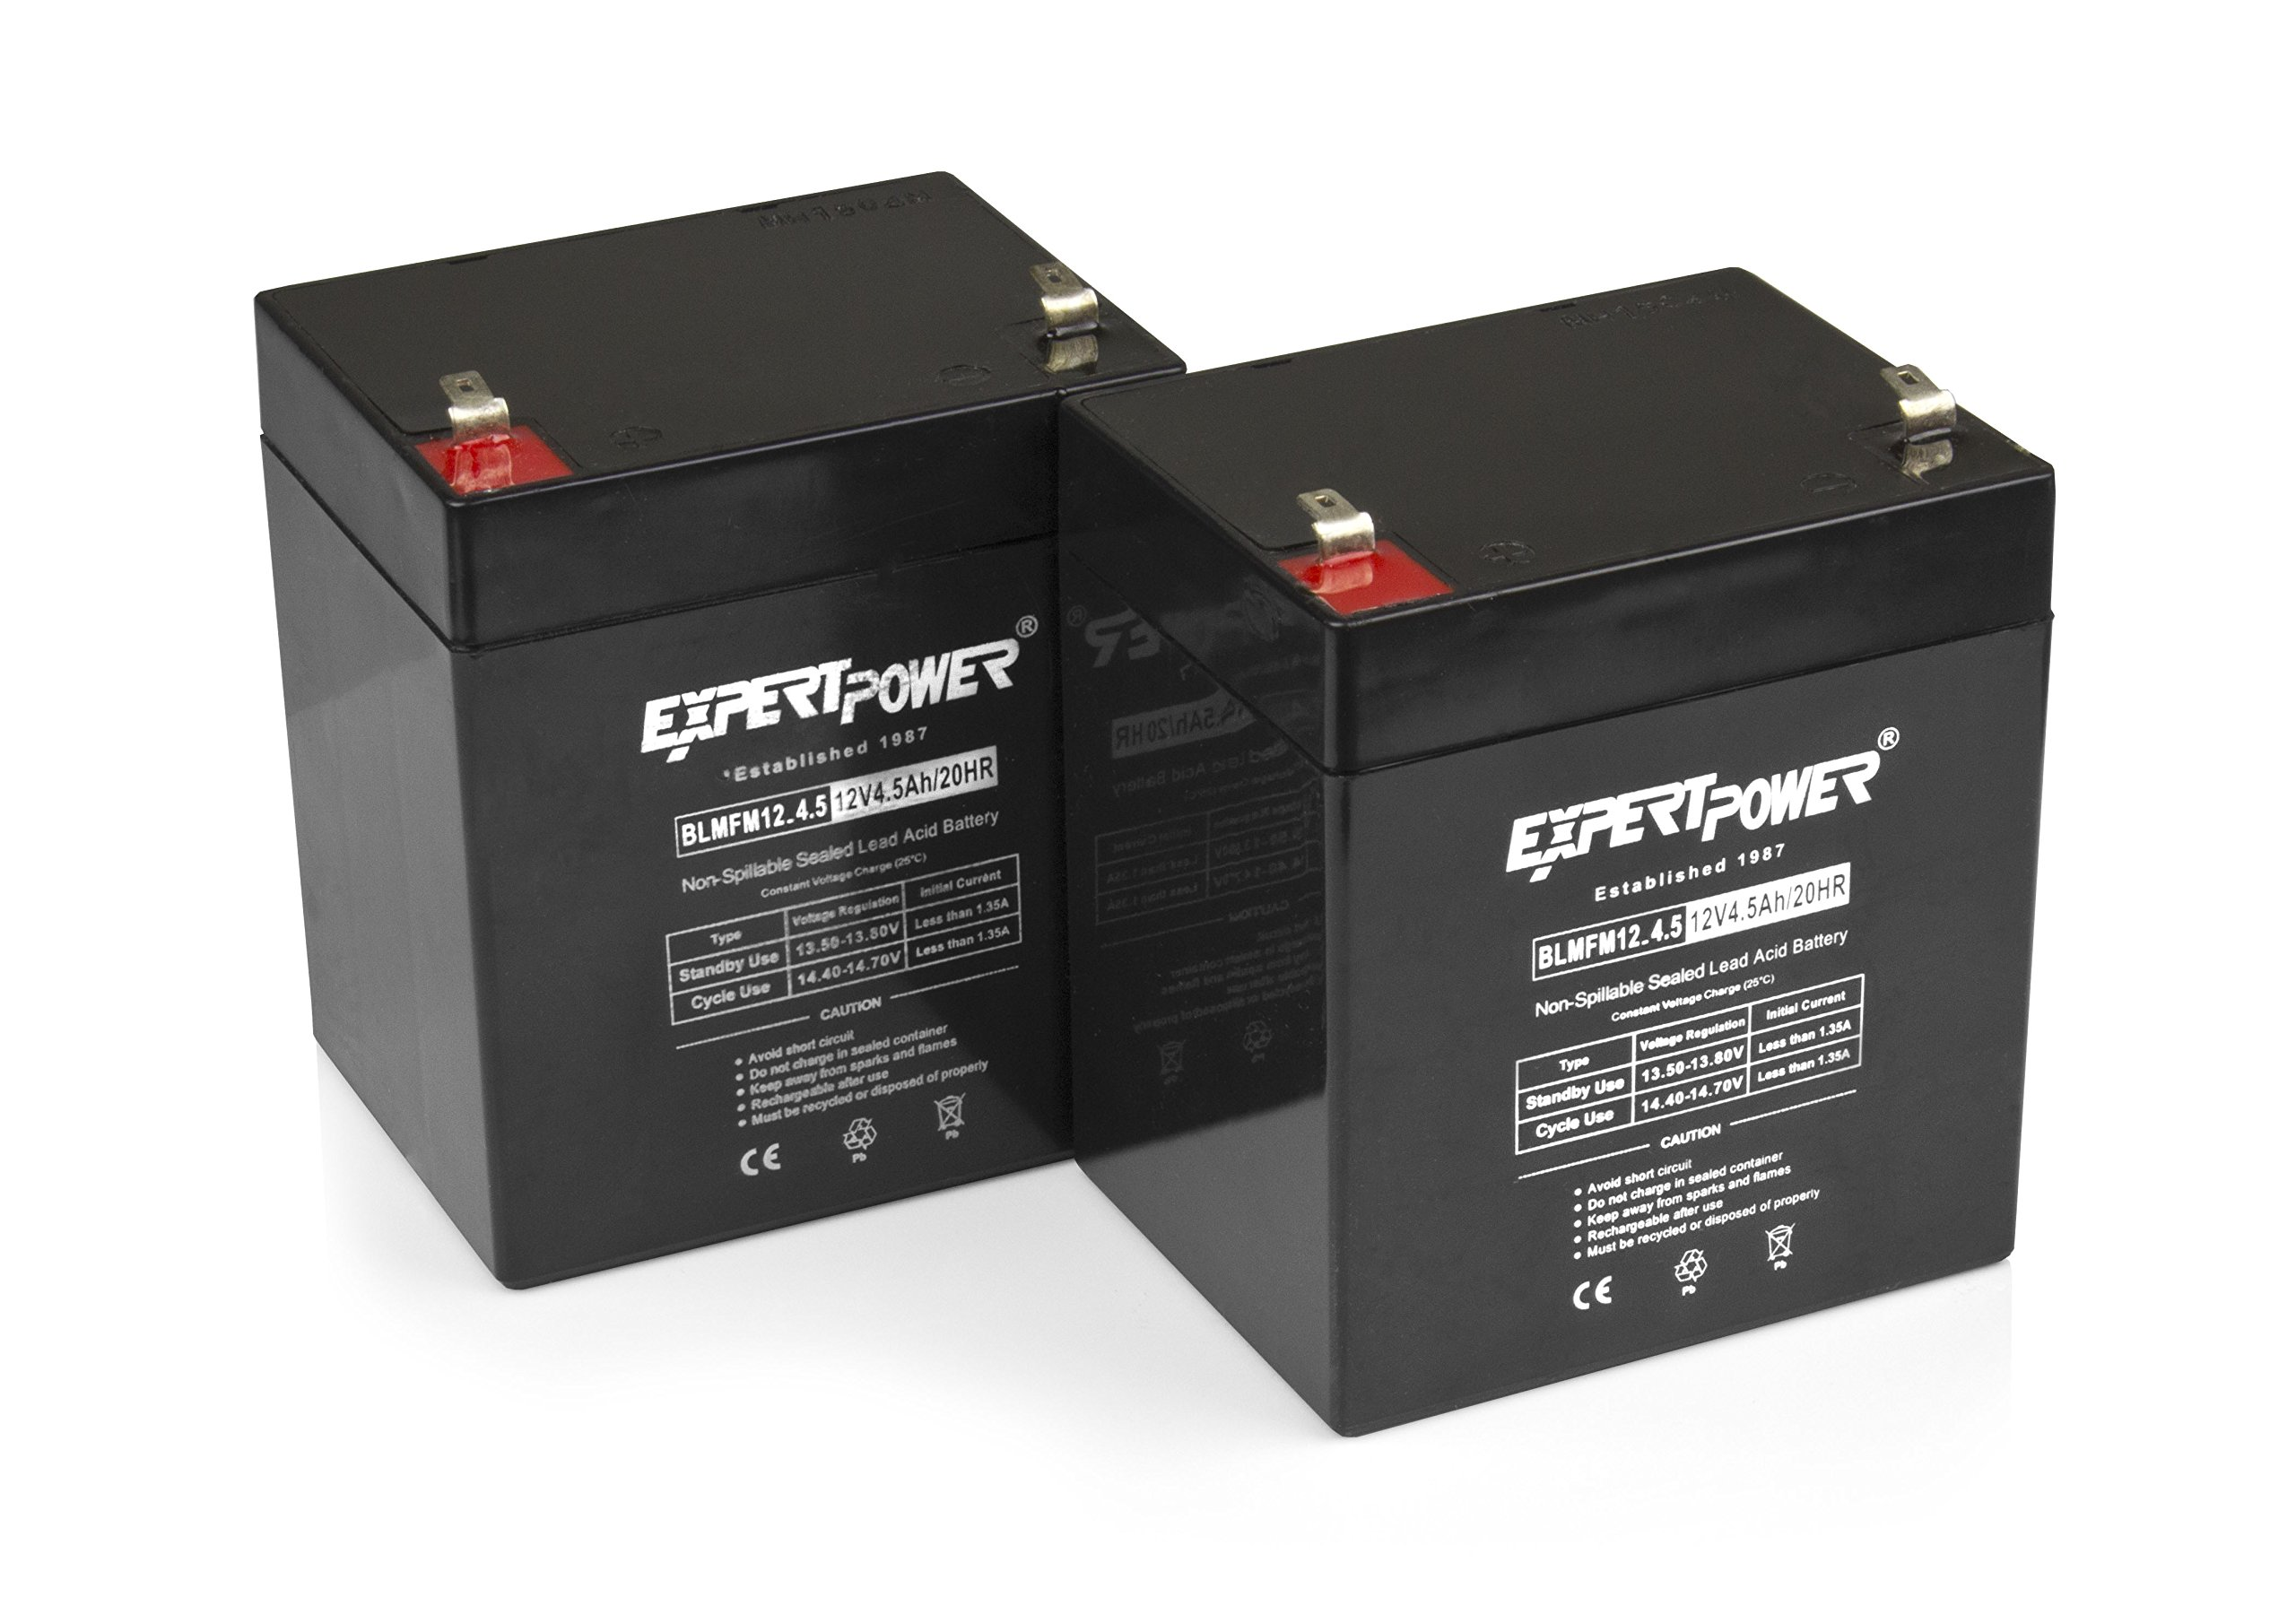 ExpertPower 12V 4.5AH Sealed Lead Acid (SLA) Battery - F1 Terminal/2 Pack by ExpertPower